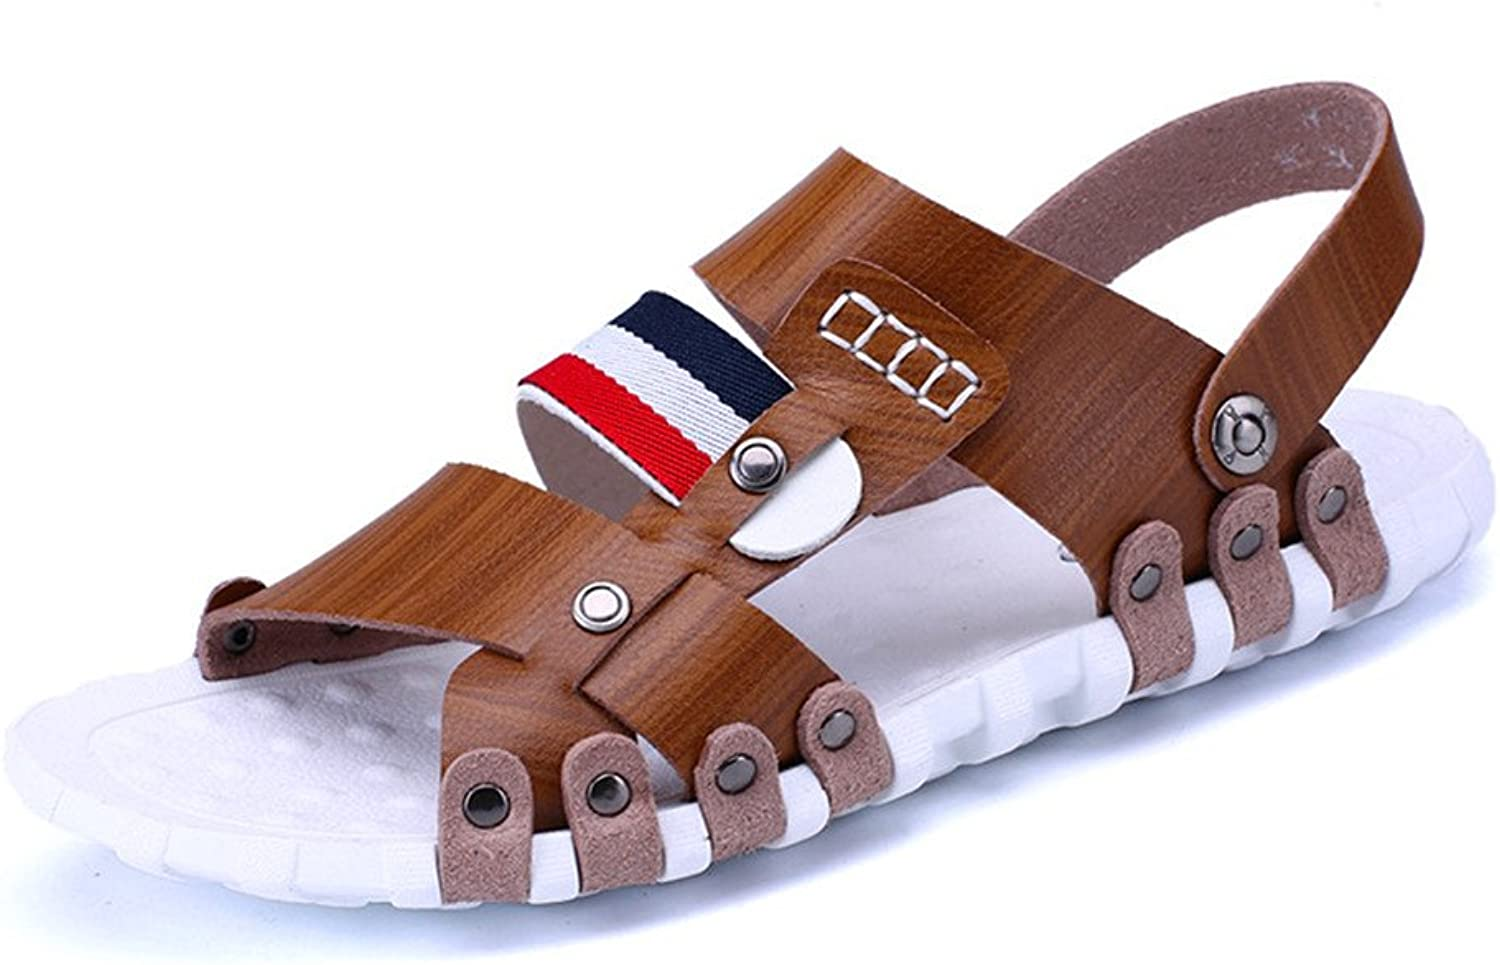 Sandals Slippery Dual-Purpose Beach shoes Hollowed and Breathable Slippers Casual shoes (24.0-27.0) cm